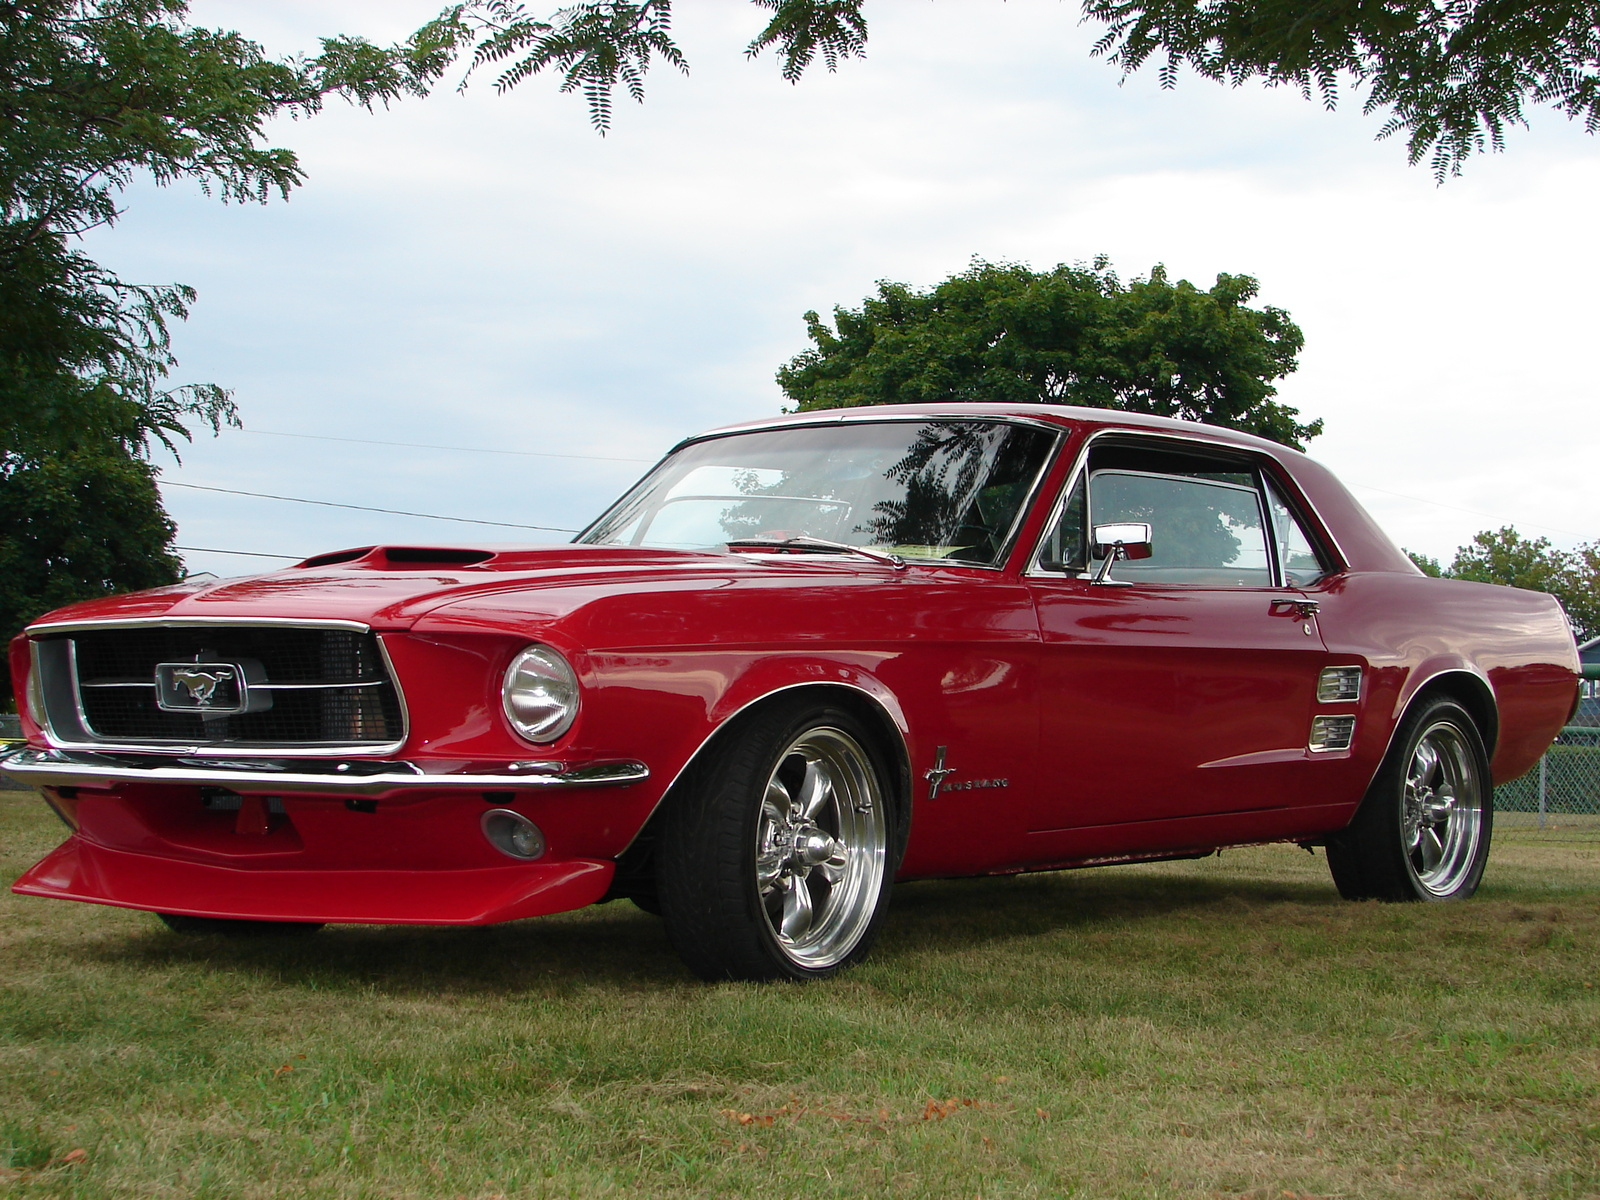 1967 Mustang Coupe Red